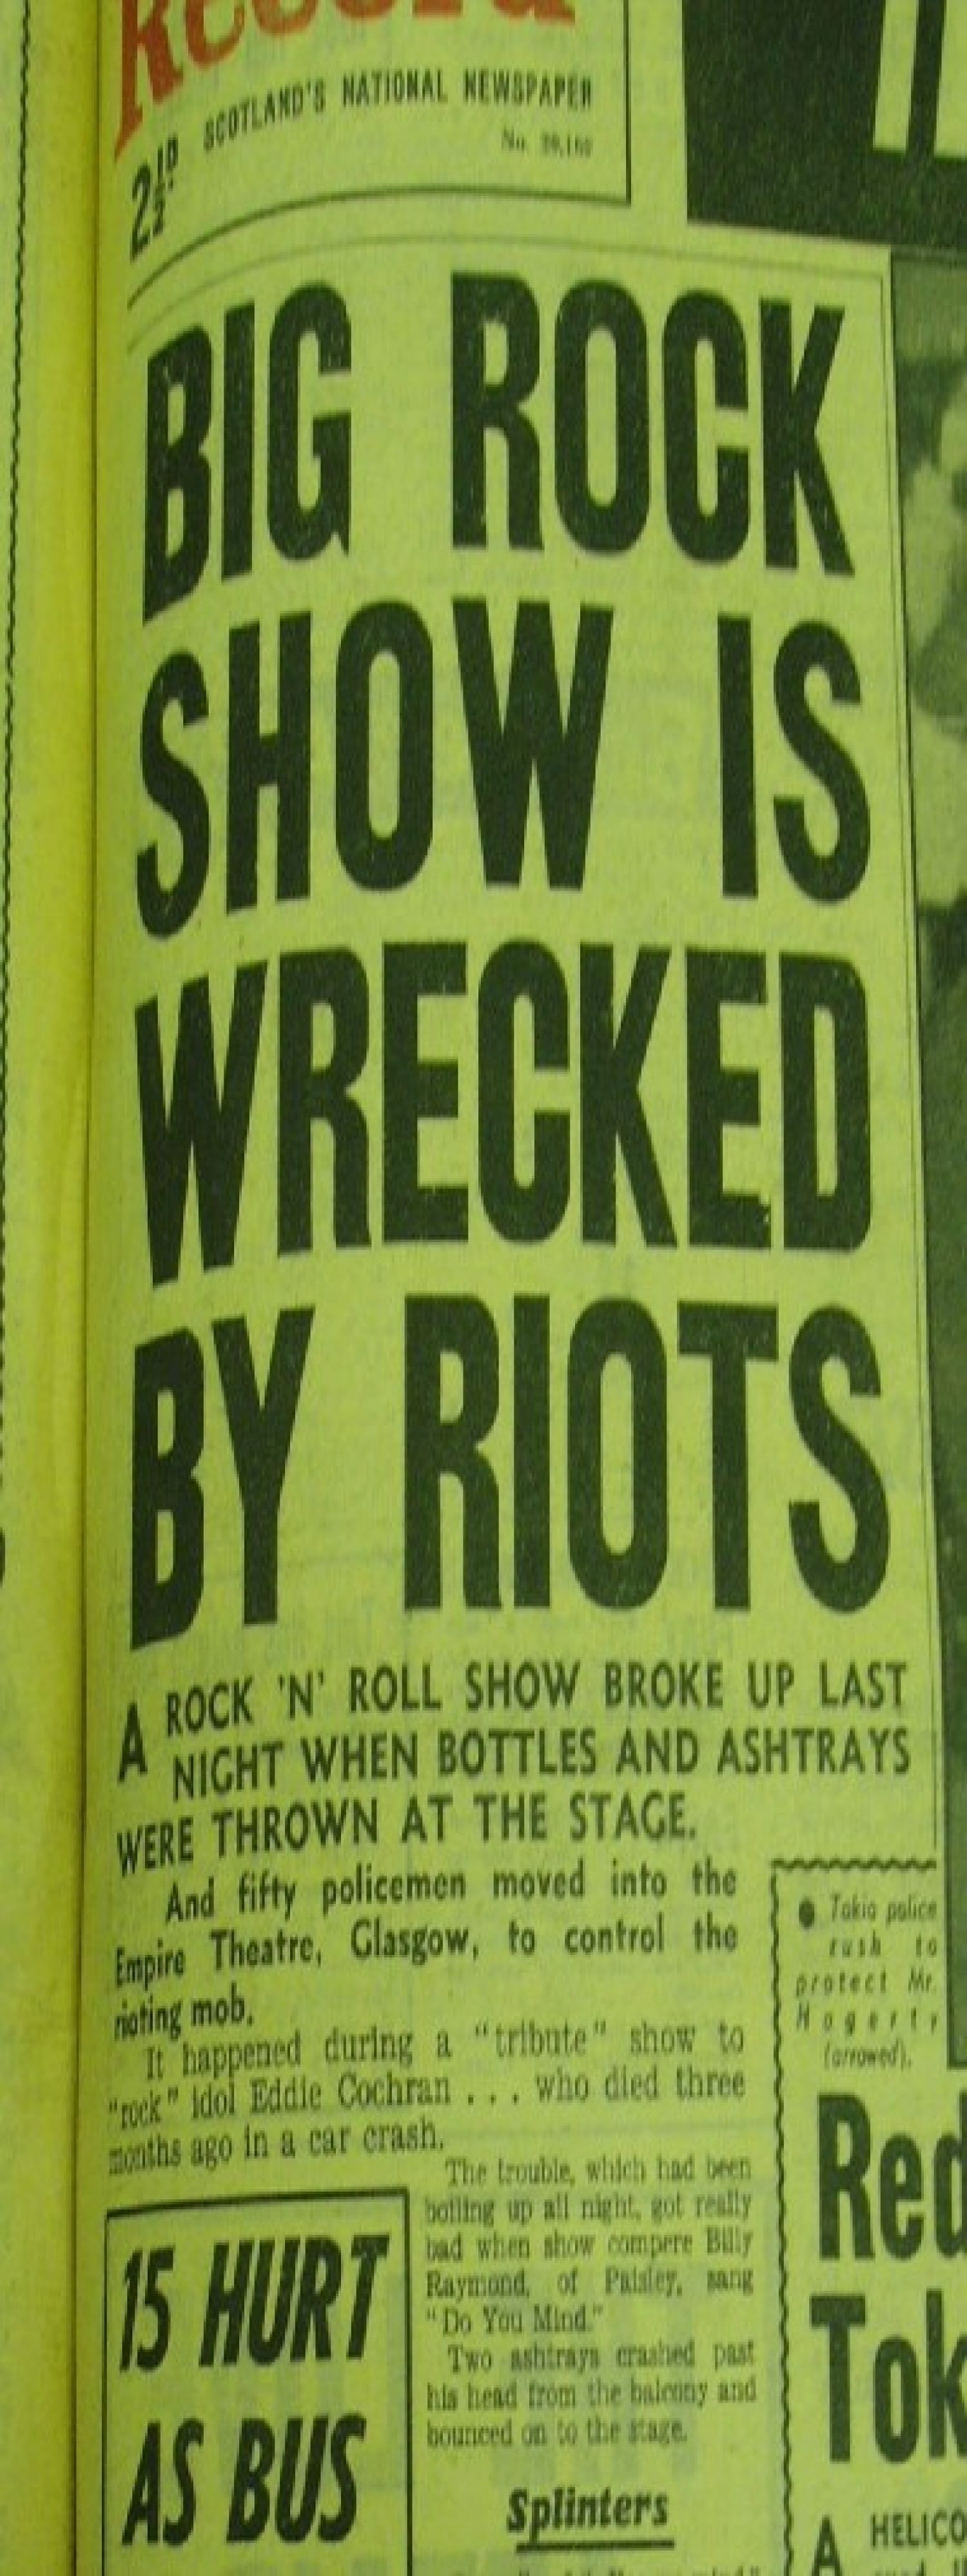 There's a riot going on - how the gig ended.